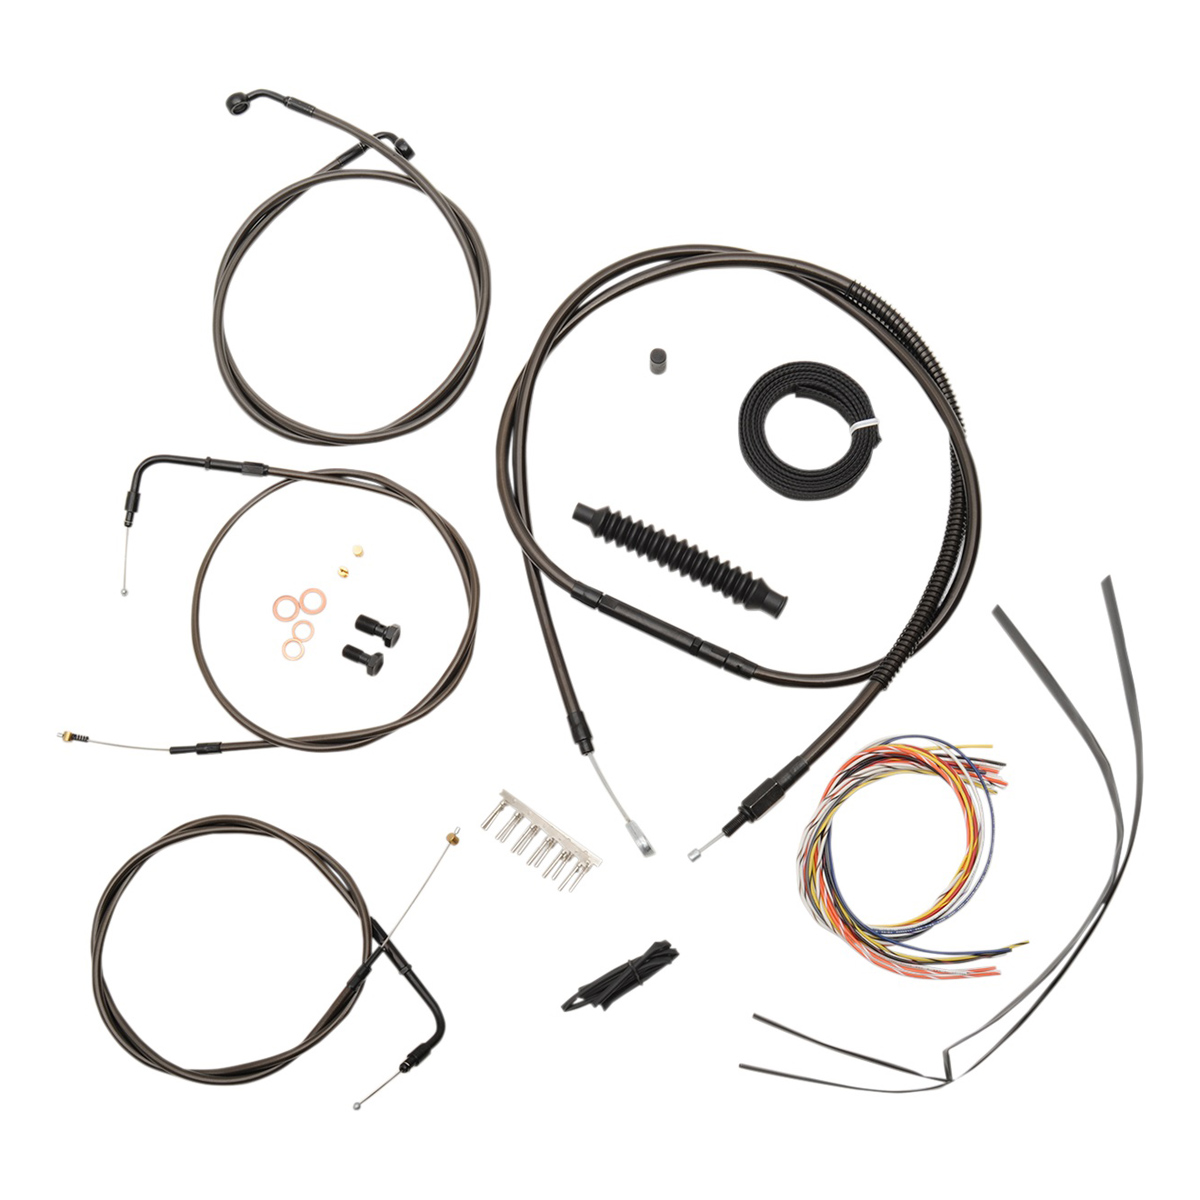 LA Choppers Midnight Complete Cable/Line/Wiring Handlebar Kit for 12″-14″ Bars